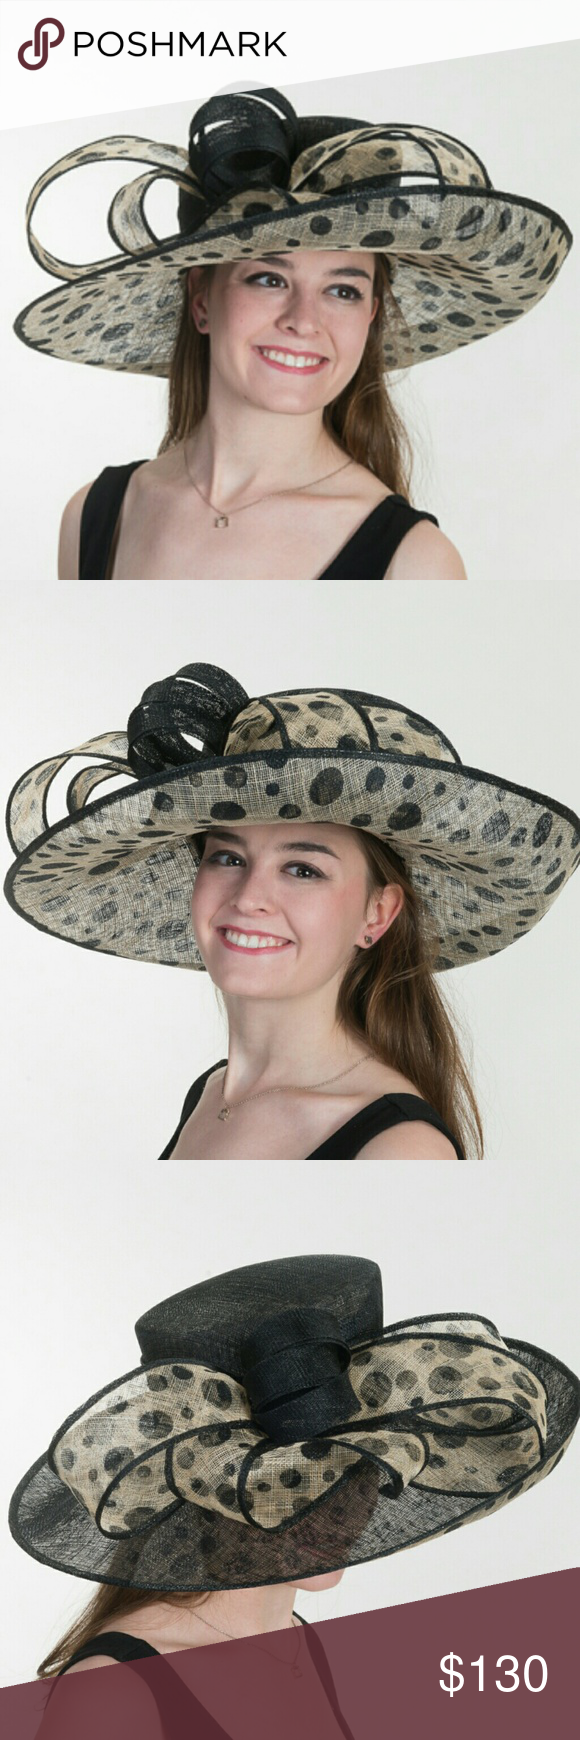 Black Natural Wide Derby Church Wedding Hat Brand new hat from manufacturer.  A beautiful hat for all your elegant occasions. Wear to Church, Weddings or your favorite Derby.  Side Sweep Polkadot Sinamay Hat Color: Natural/Black Material: Printed Sinamay Head Size: 22.5 inch. Crown Width: 8 inch. Crown Height: 4.5 inch. Brim Width: 7.5 ~ 5 inch. SKU:?116030-12.80 Accessories Hats